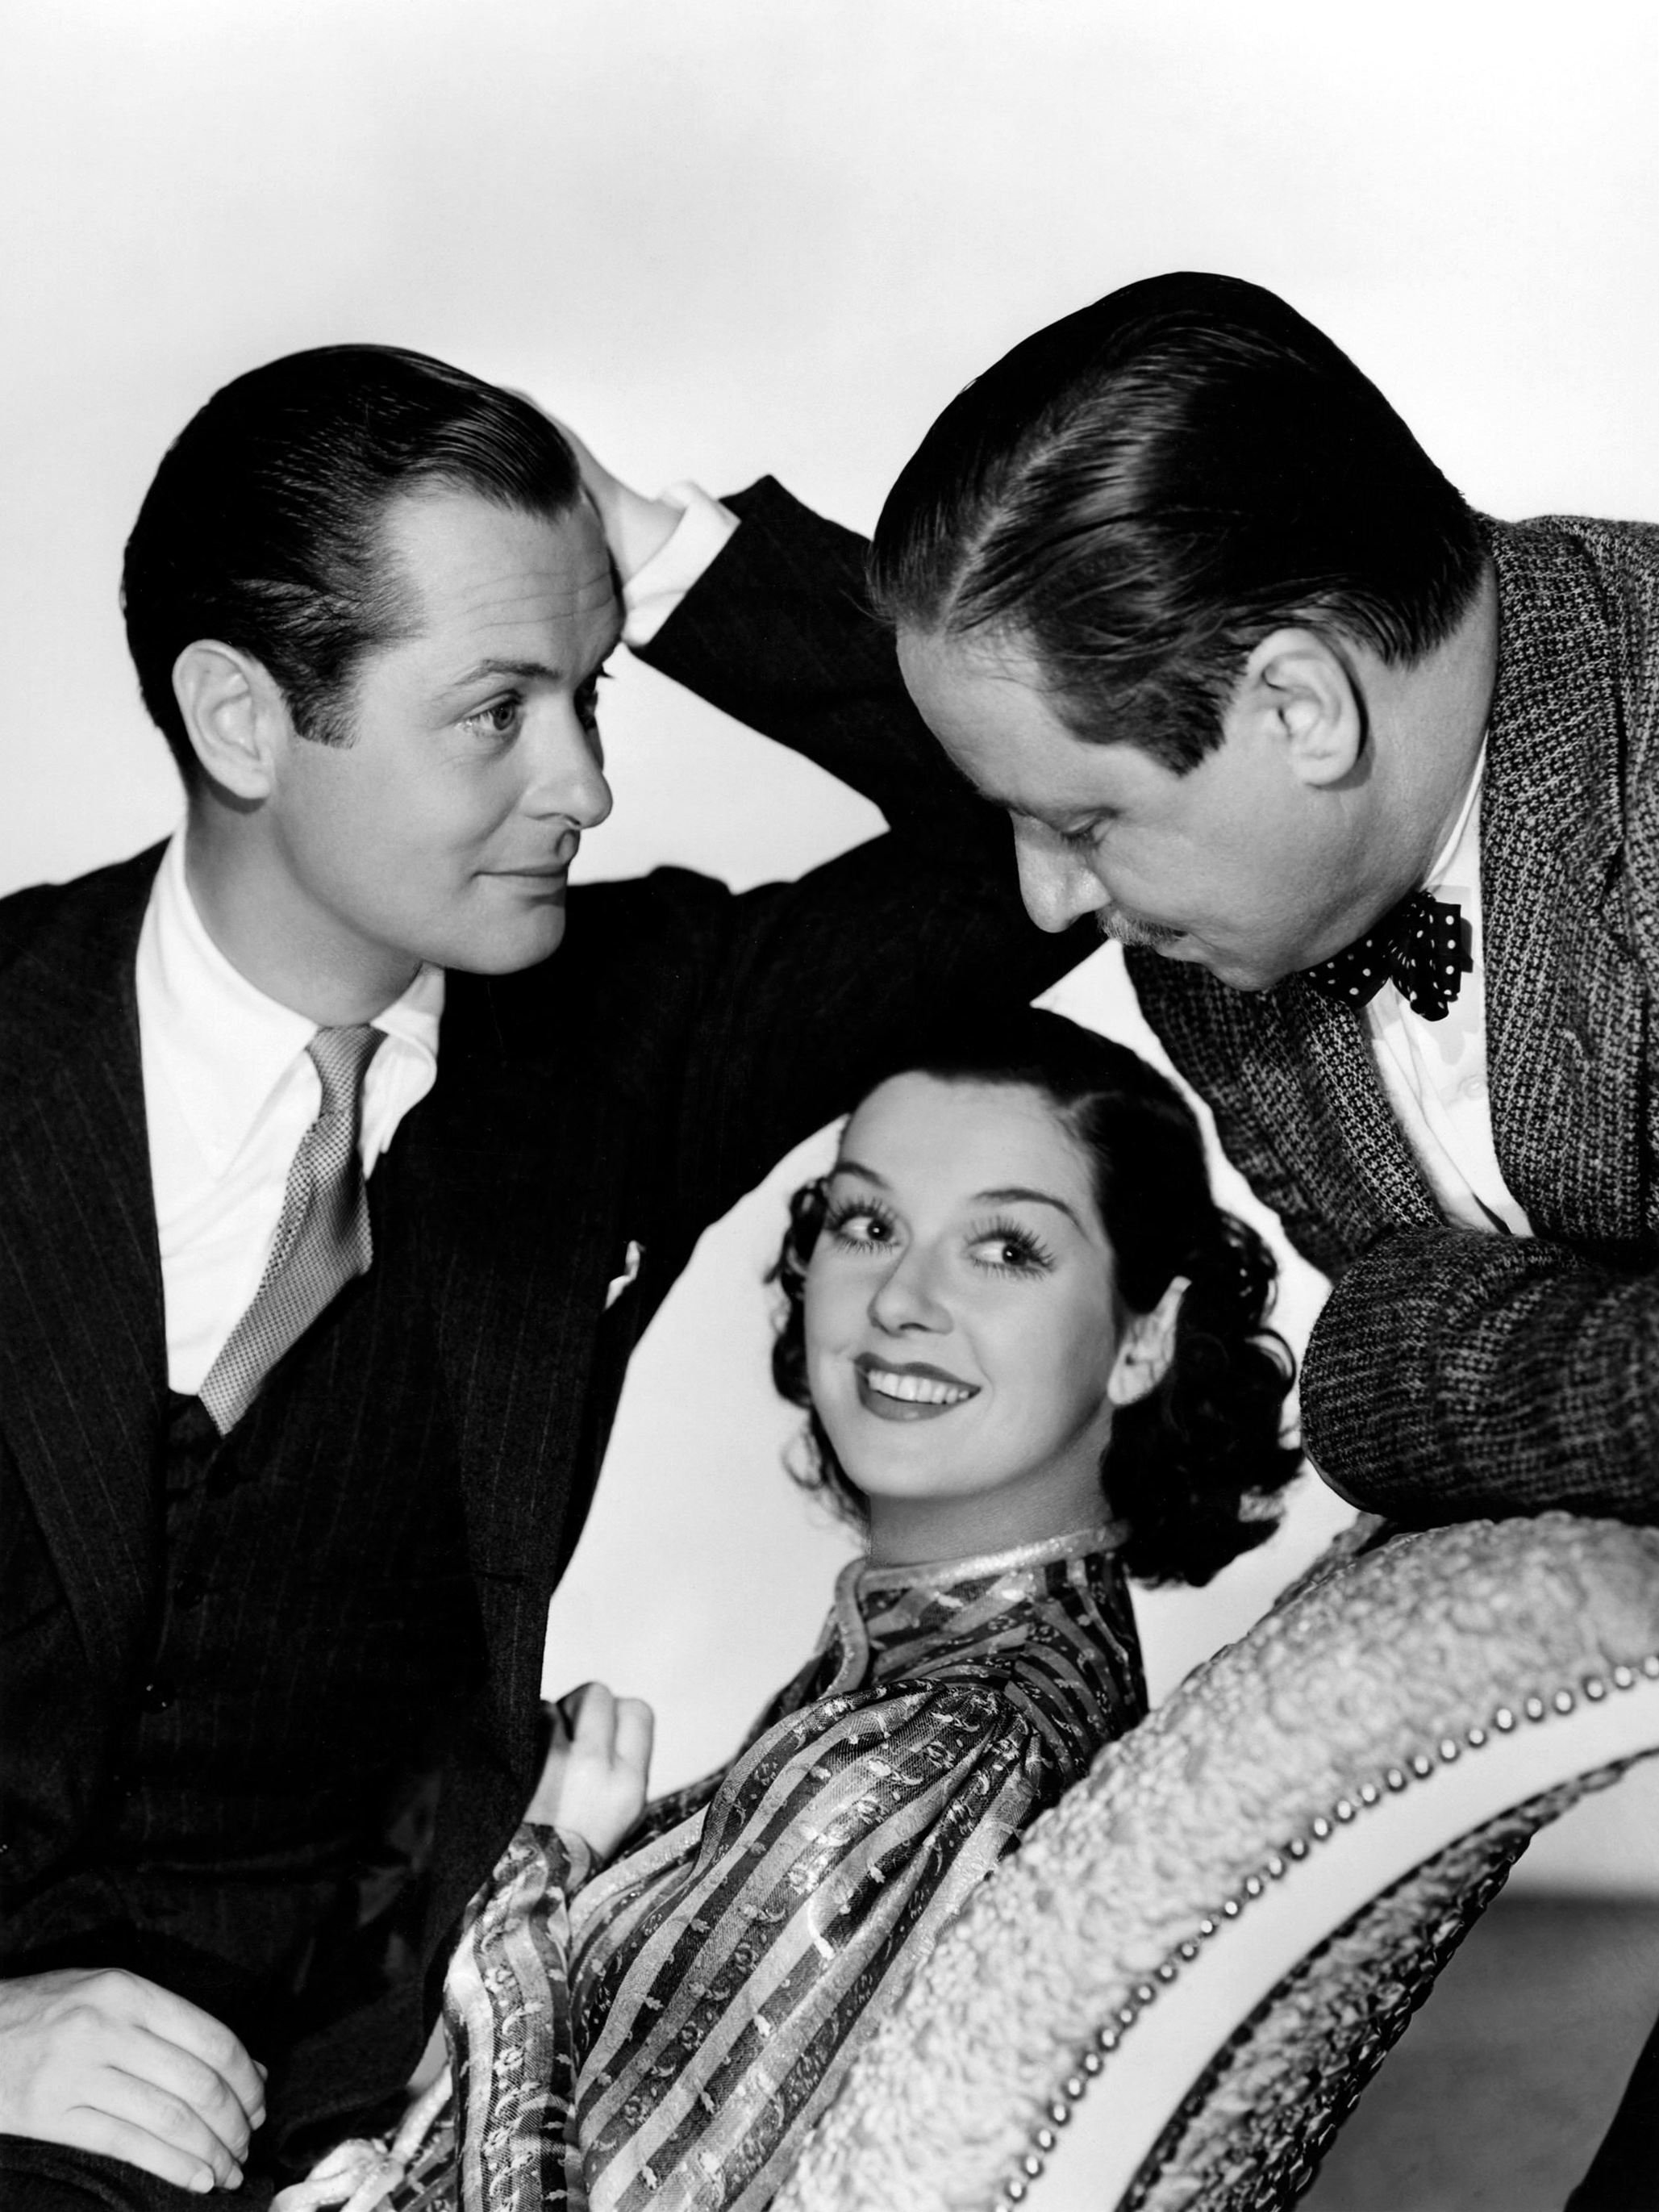 Rosalind Russell in Live, Love and Learn with (L to R) Robert Montgomery, Rosalind Russell, Robert Benchley